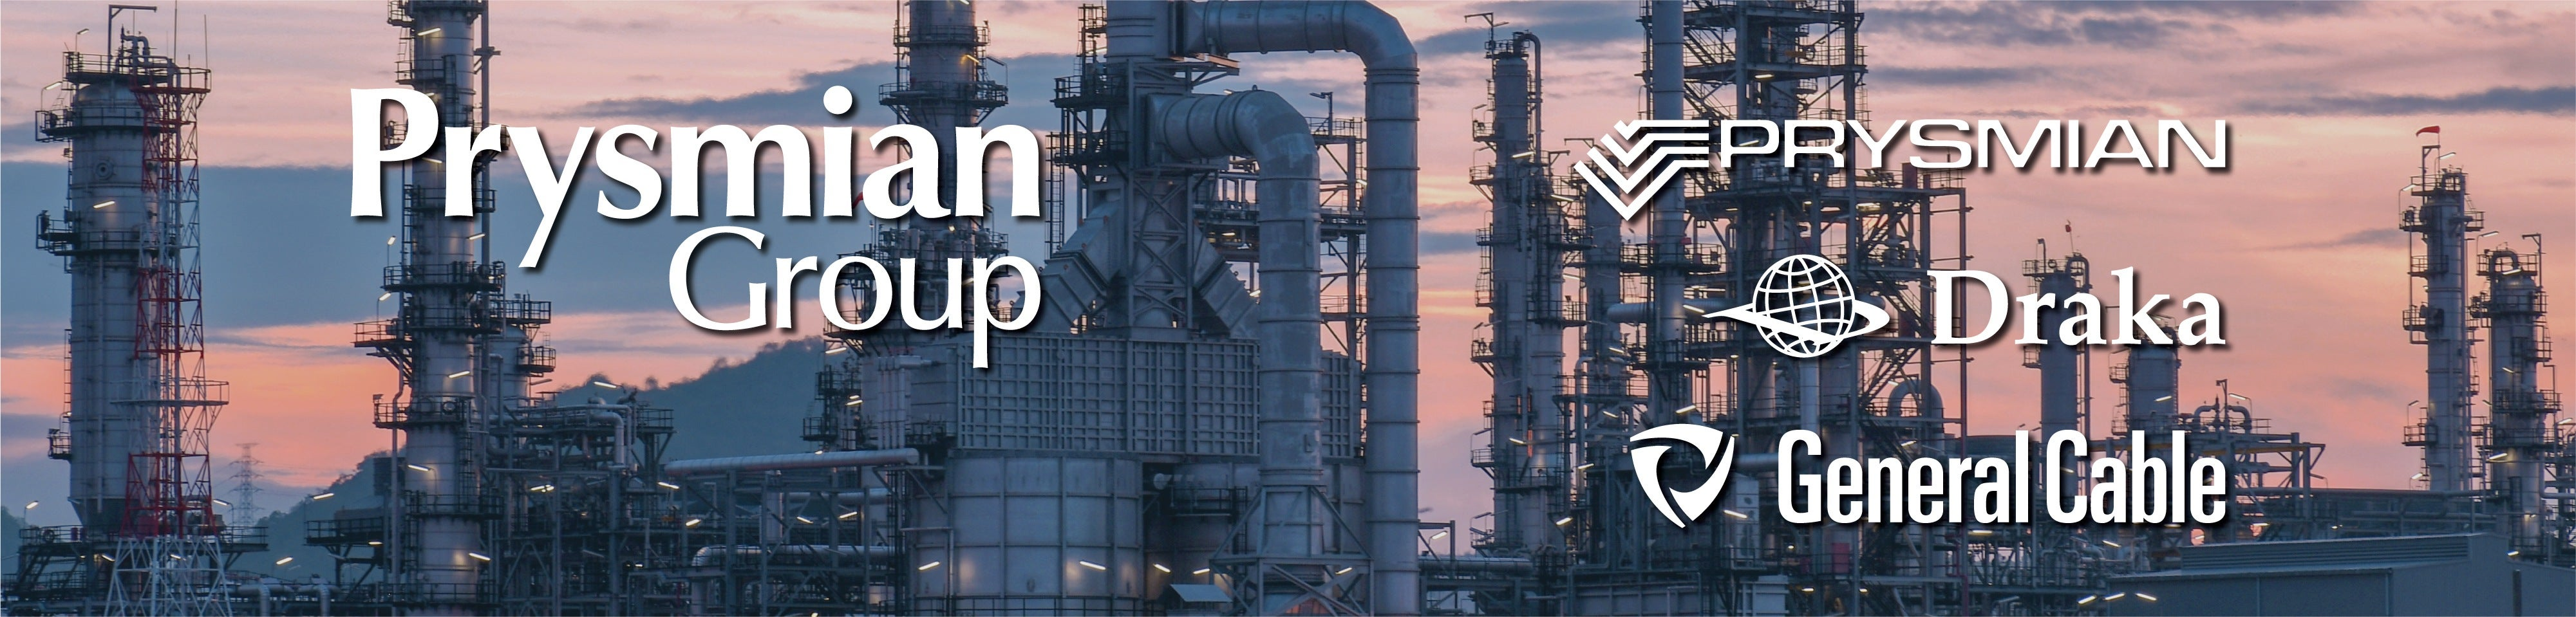 Featured Suppliers Banner Image - Prysmian Group.jpg